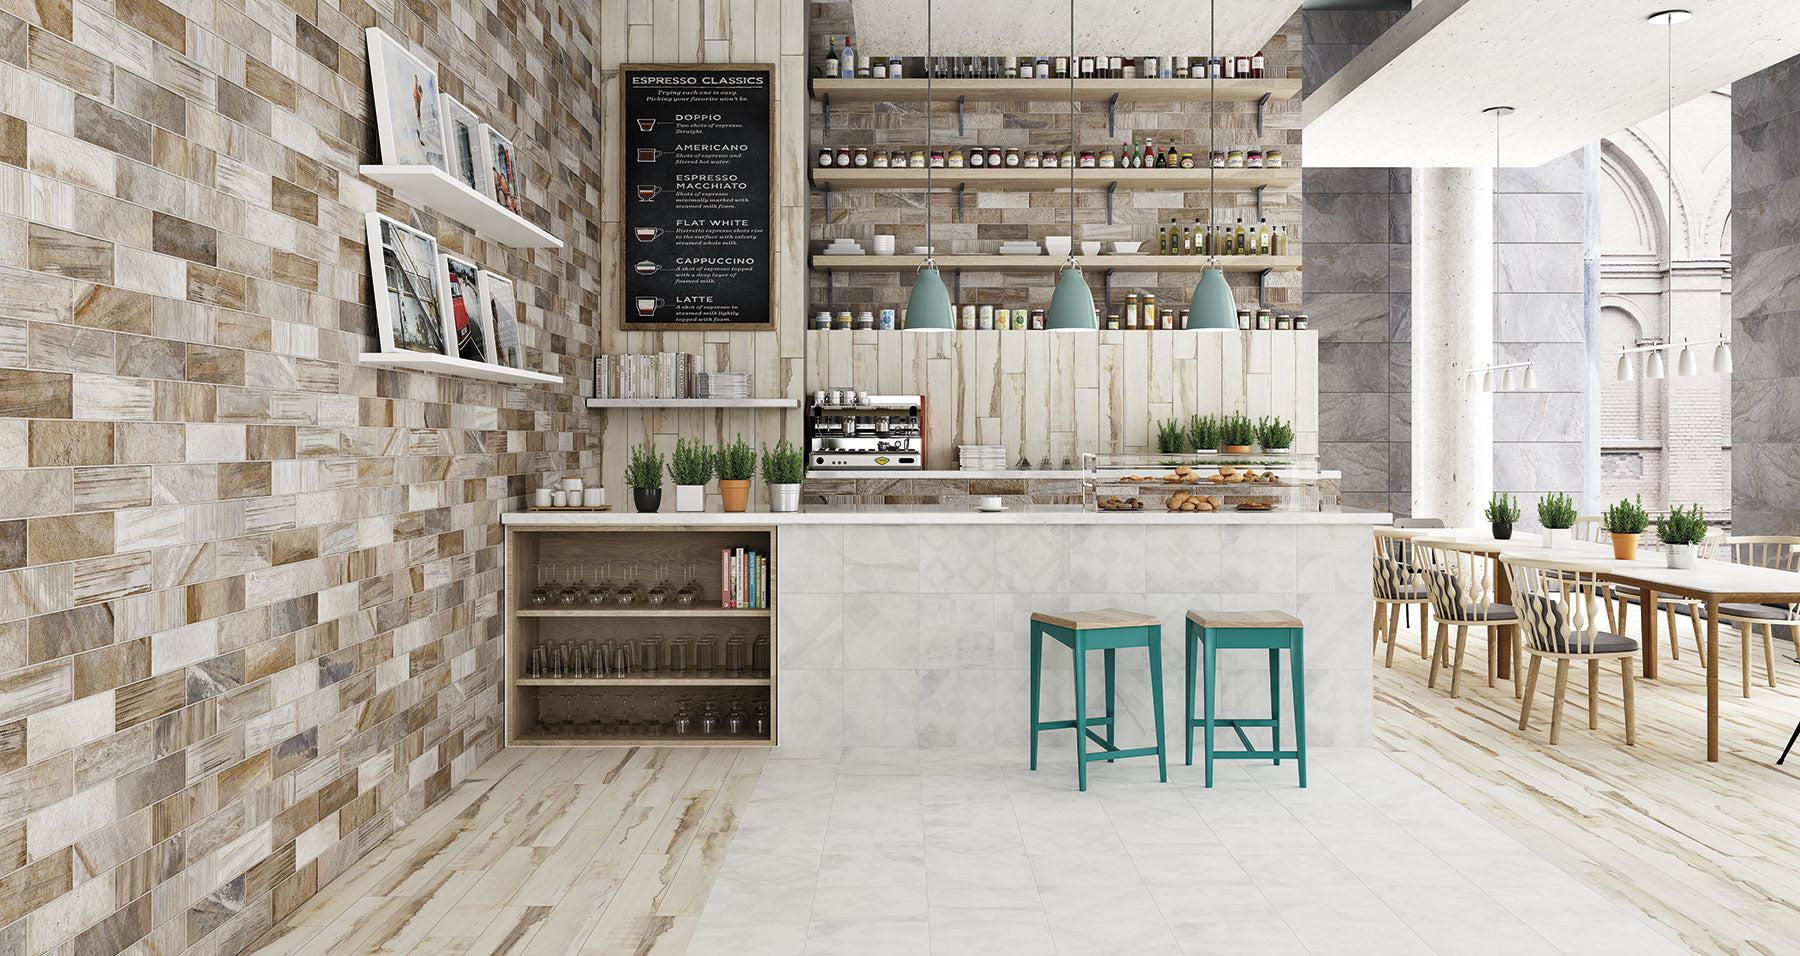 Commercial Tiles for a Rustic and Durable Coffee Shop or Cafe Interior